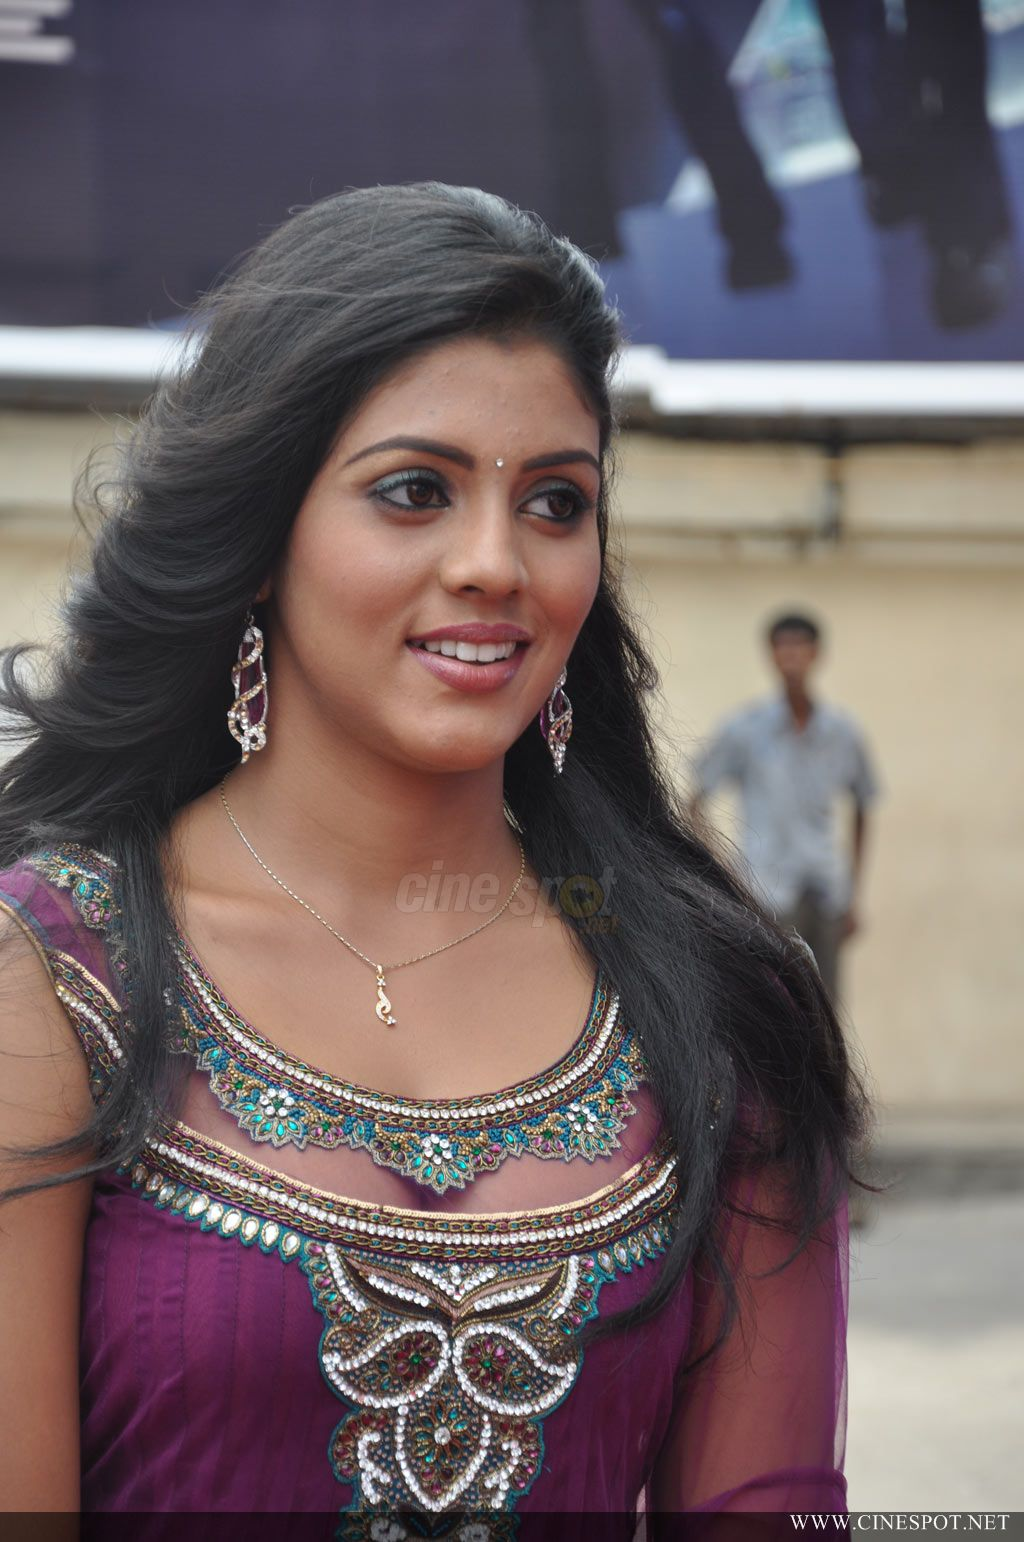 iniya naveliniya wiki, iniya iru malargal facebook, iniya iru maralgal, indian actress photos, iniya iru malargal 183, iniya iru malargal 189, iniya iru malargal 184, iniya iru malargal, iniya iru malargal tubetamil, iniya iru malargal tamil, iniya pongal nalvazhthukkal tamil, iniya tamil osai, iniya navel, iniya hot photos, iniya pirantha naal vaazhthukkal, iniya facebook, iniya photos, iniya puthandu nalvazhthukkal, indian actress, iniya pon nilave song lyrics